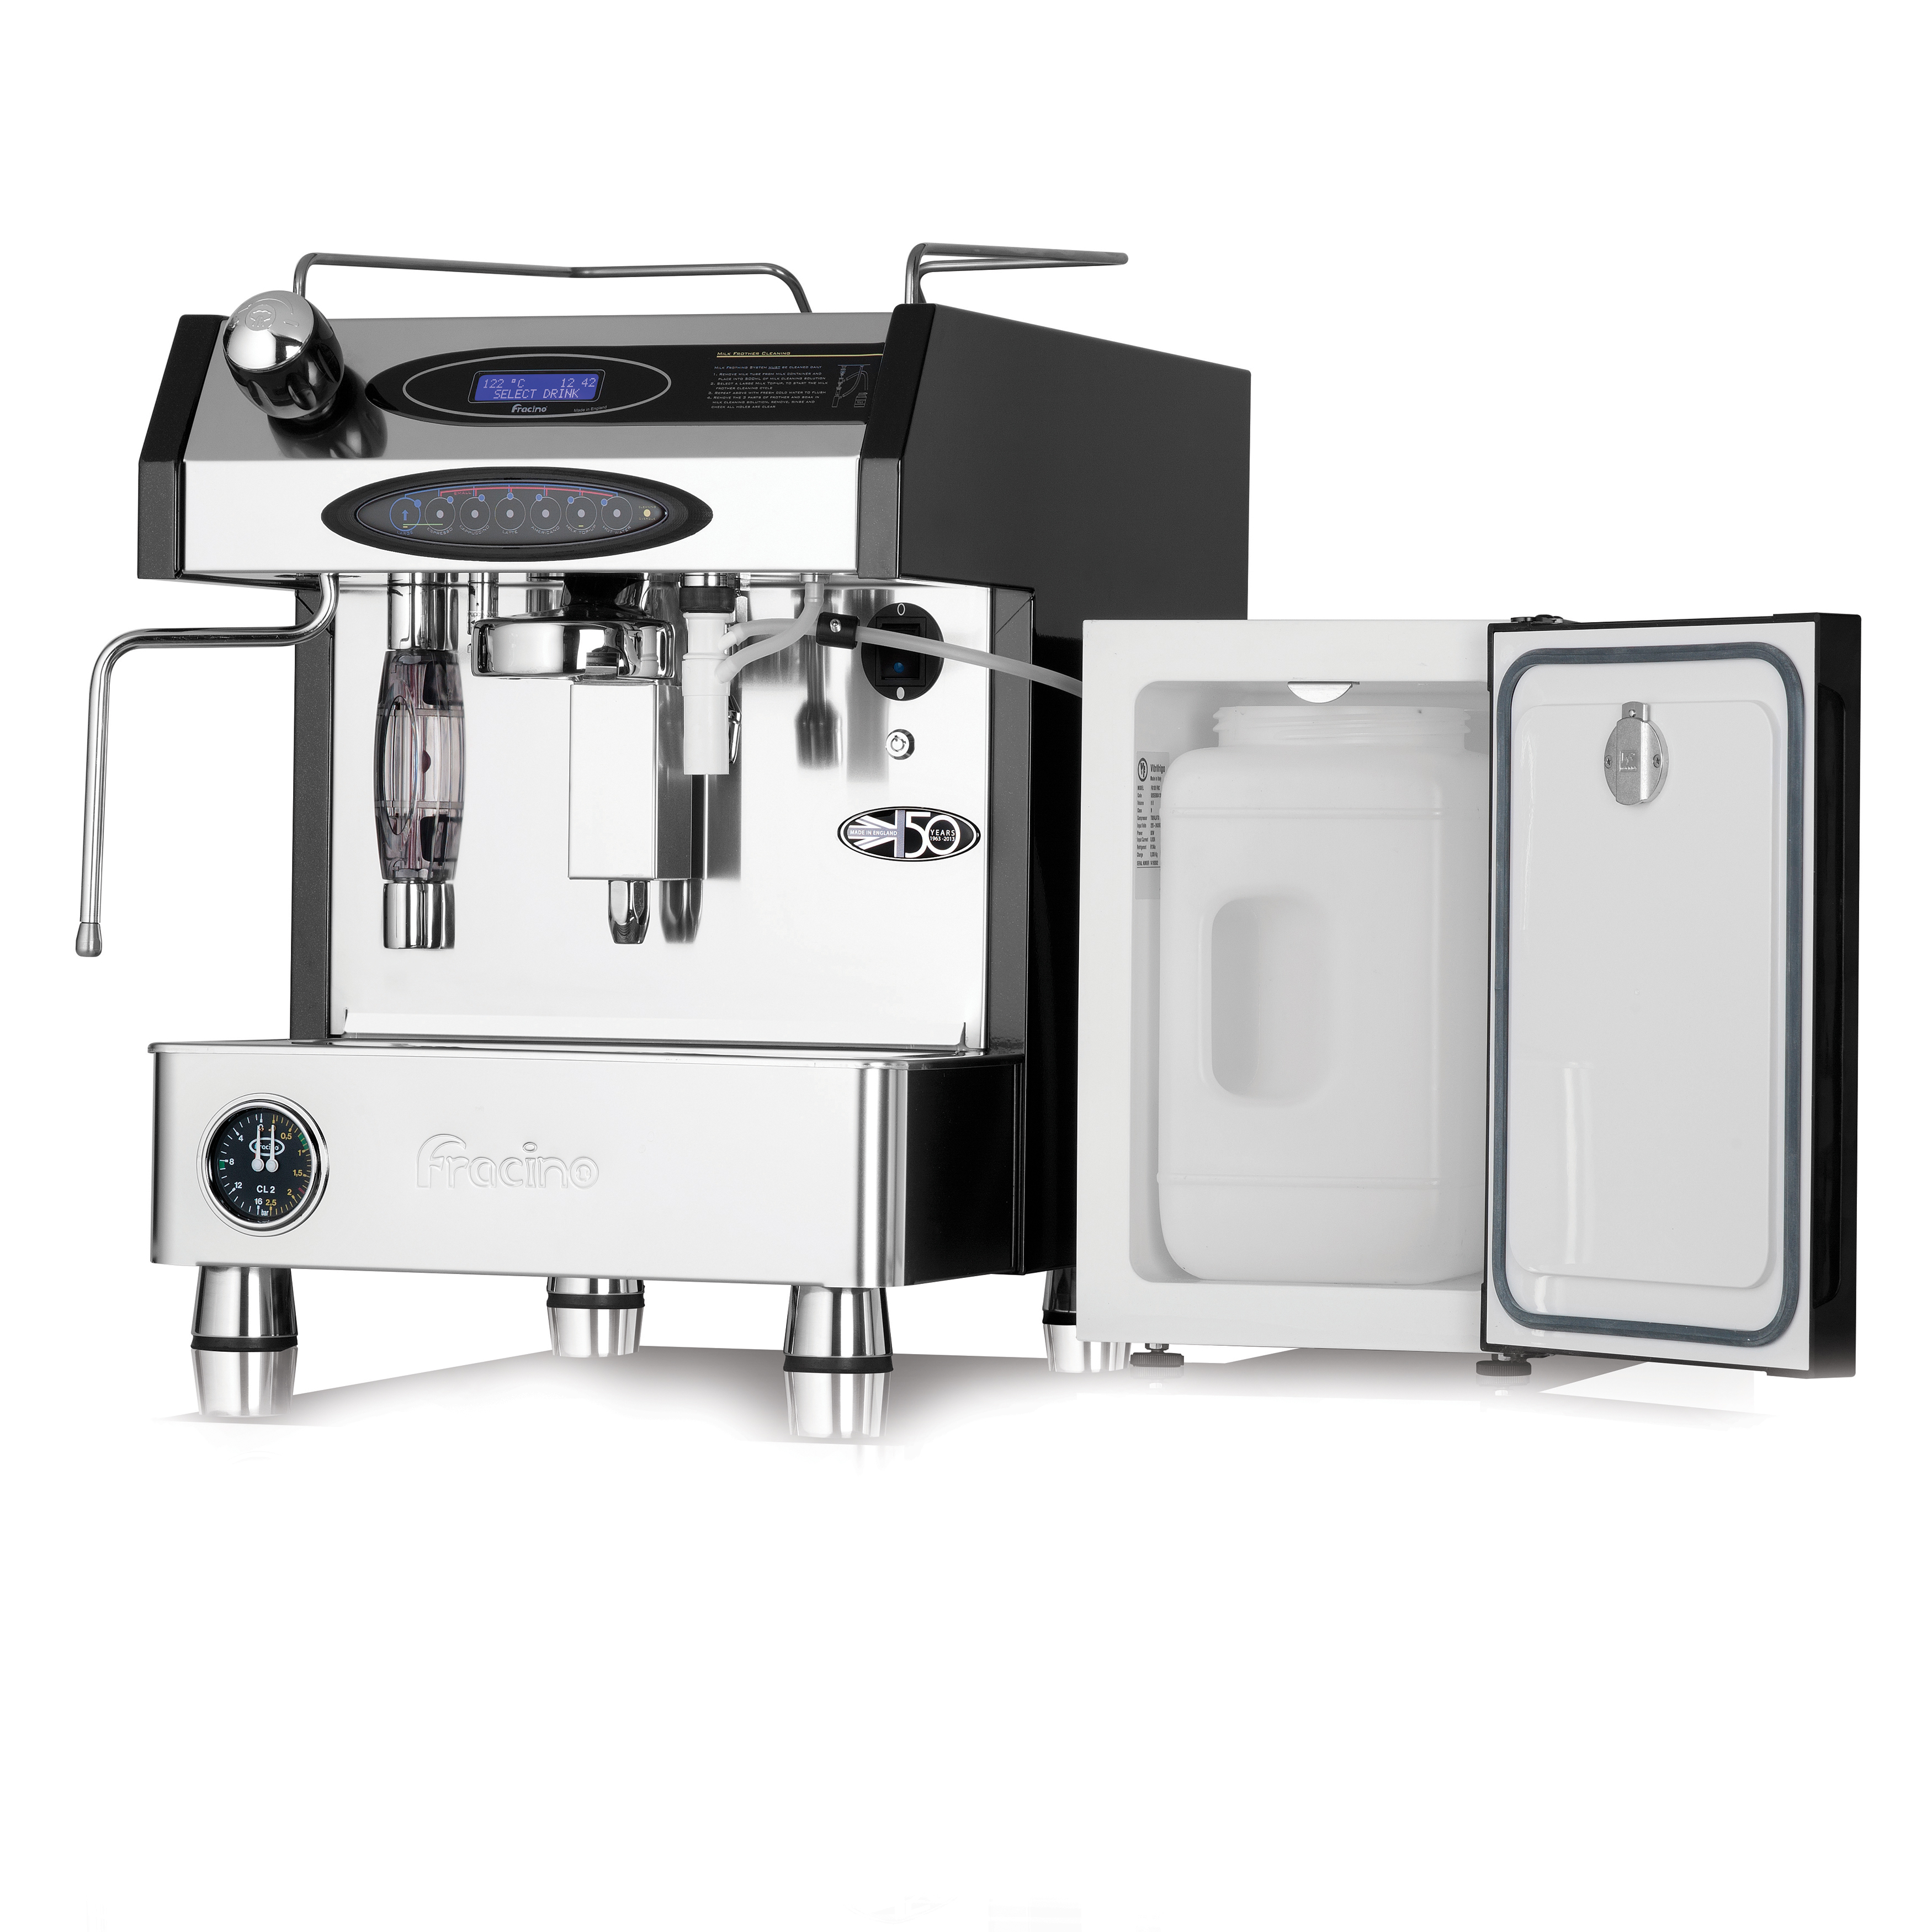 Fracino Velocino Espresso Coffee Machine Including 4.4Ltr Fridge Ref VELOCINO